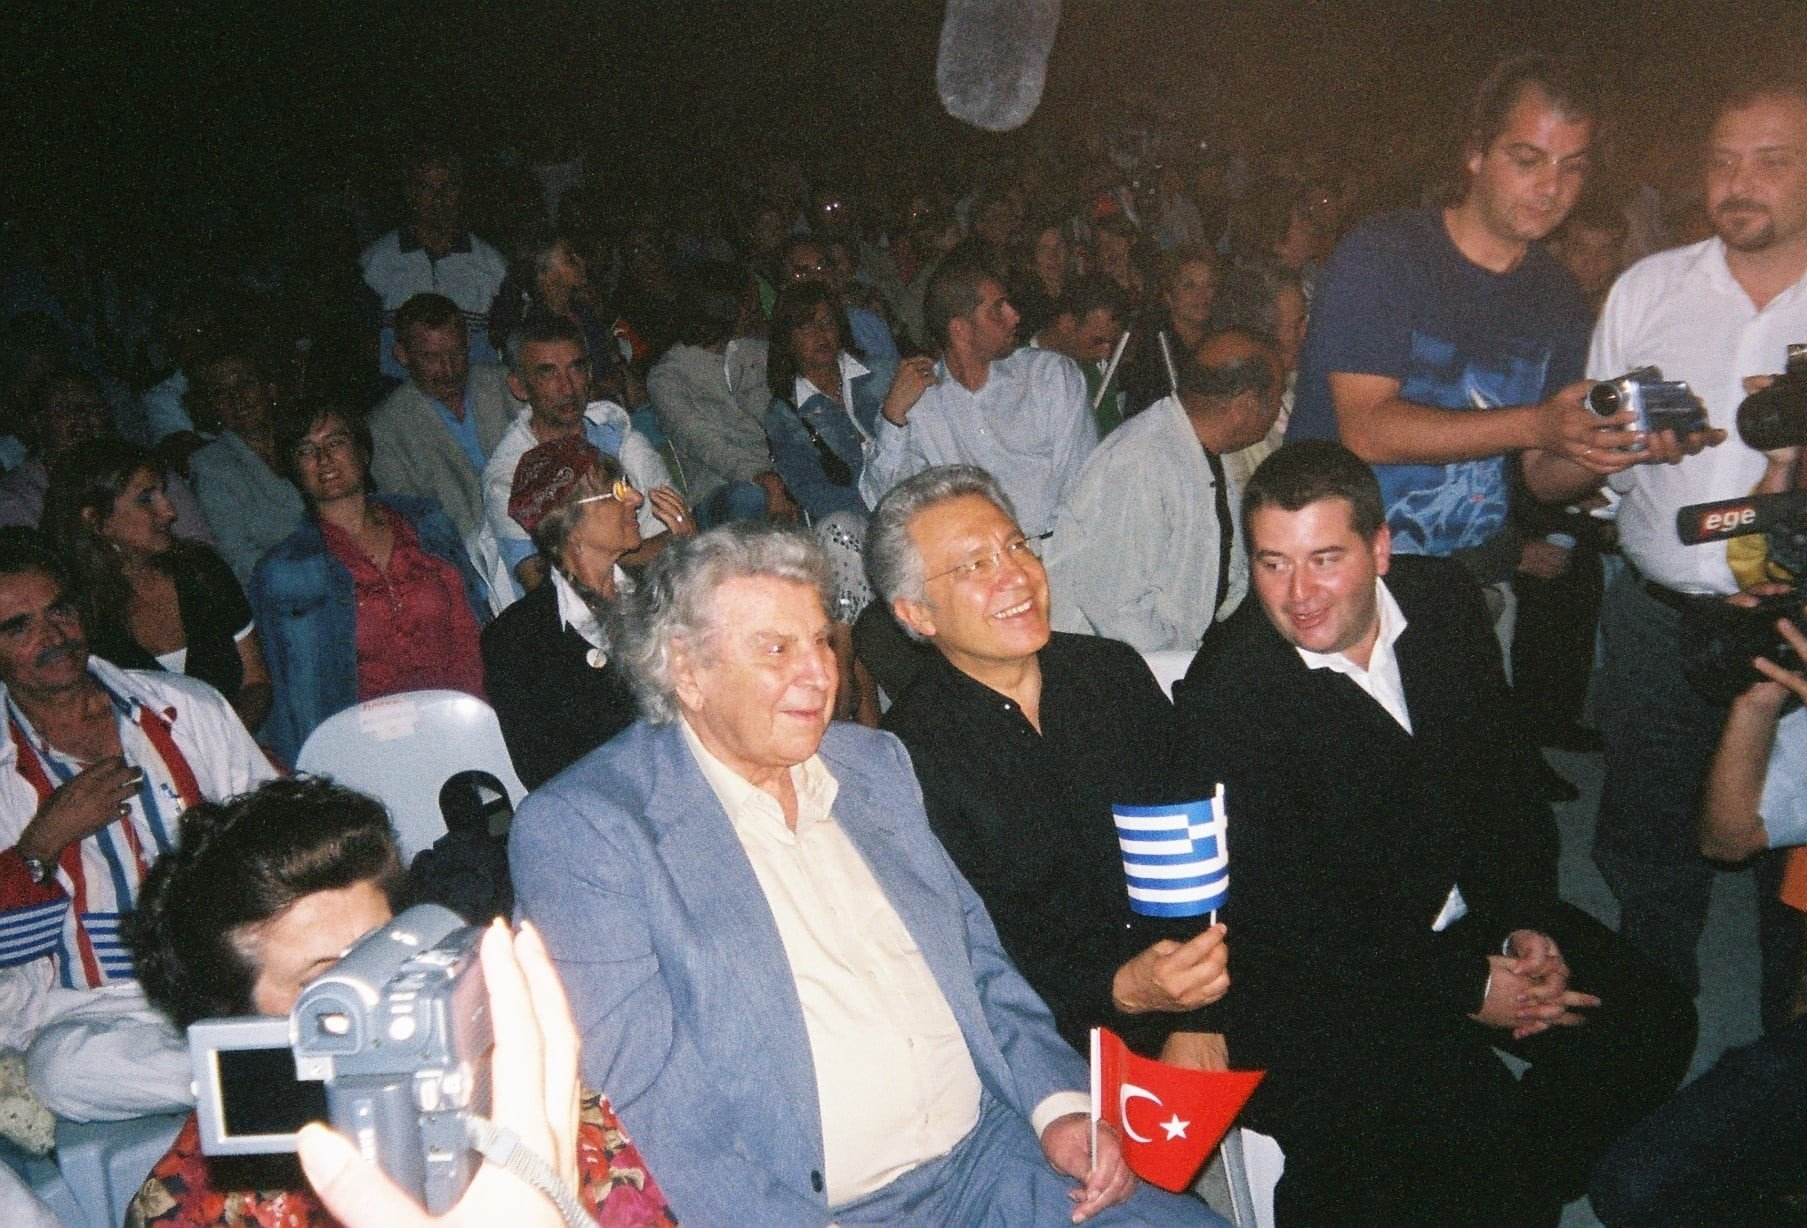 This file photo provided on Sept. 3, 2021 shows Mikis Theodorakis and Zülfü Livaneli next to each other before a joint concert in 2005 in Çeşme, western Turkey. (IHA Photo)